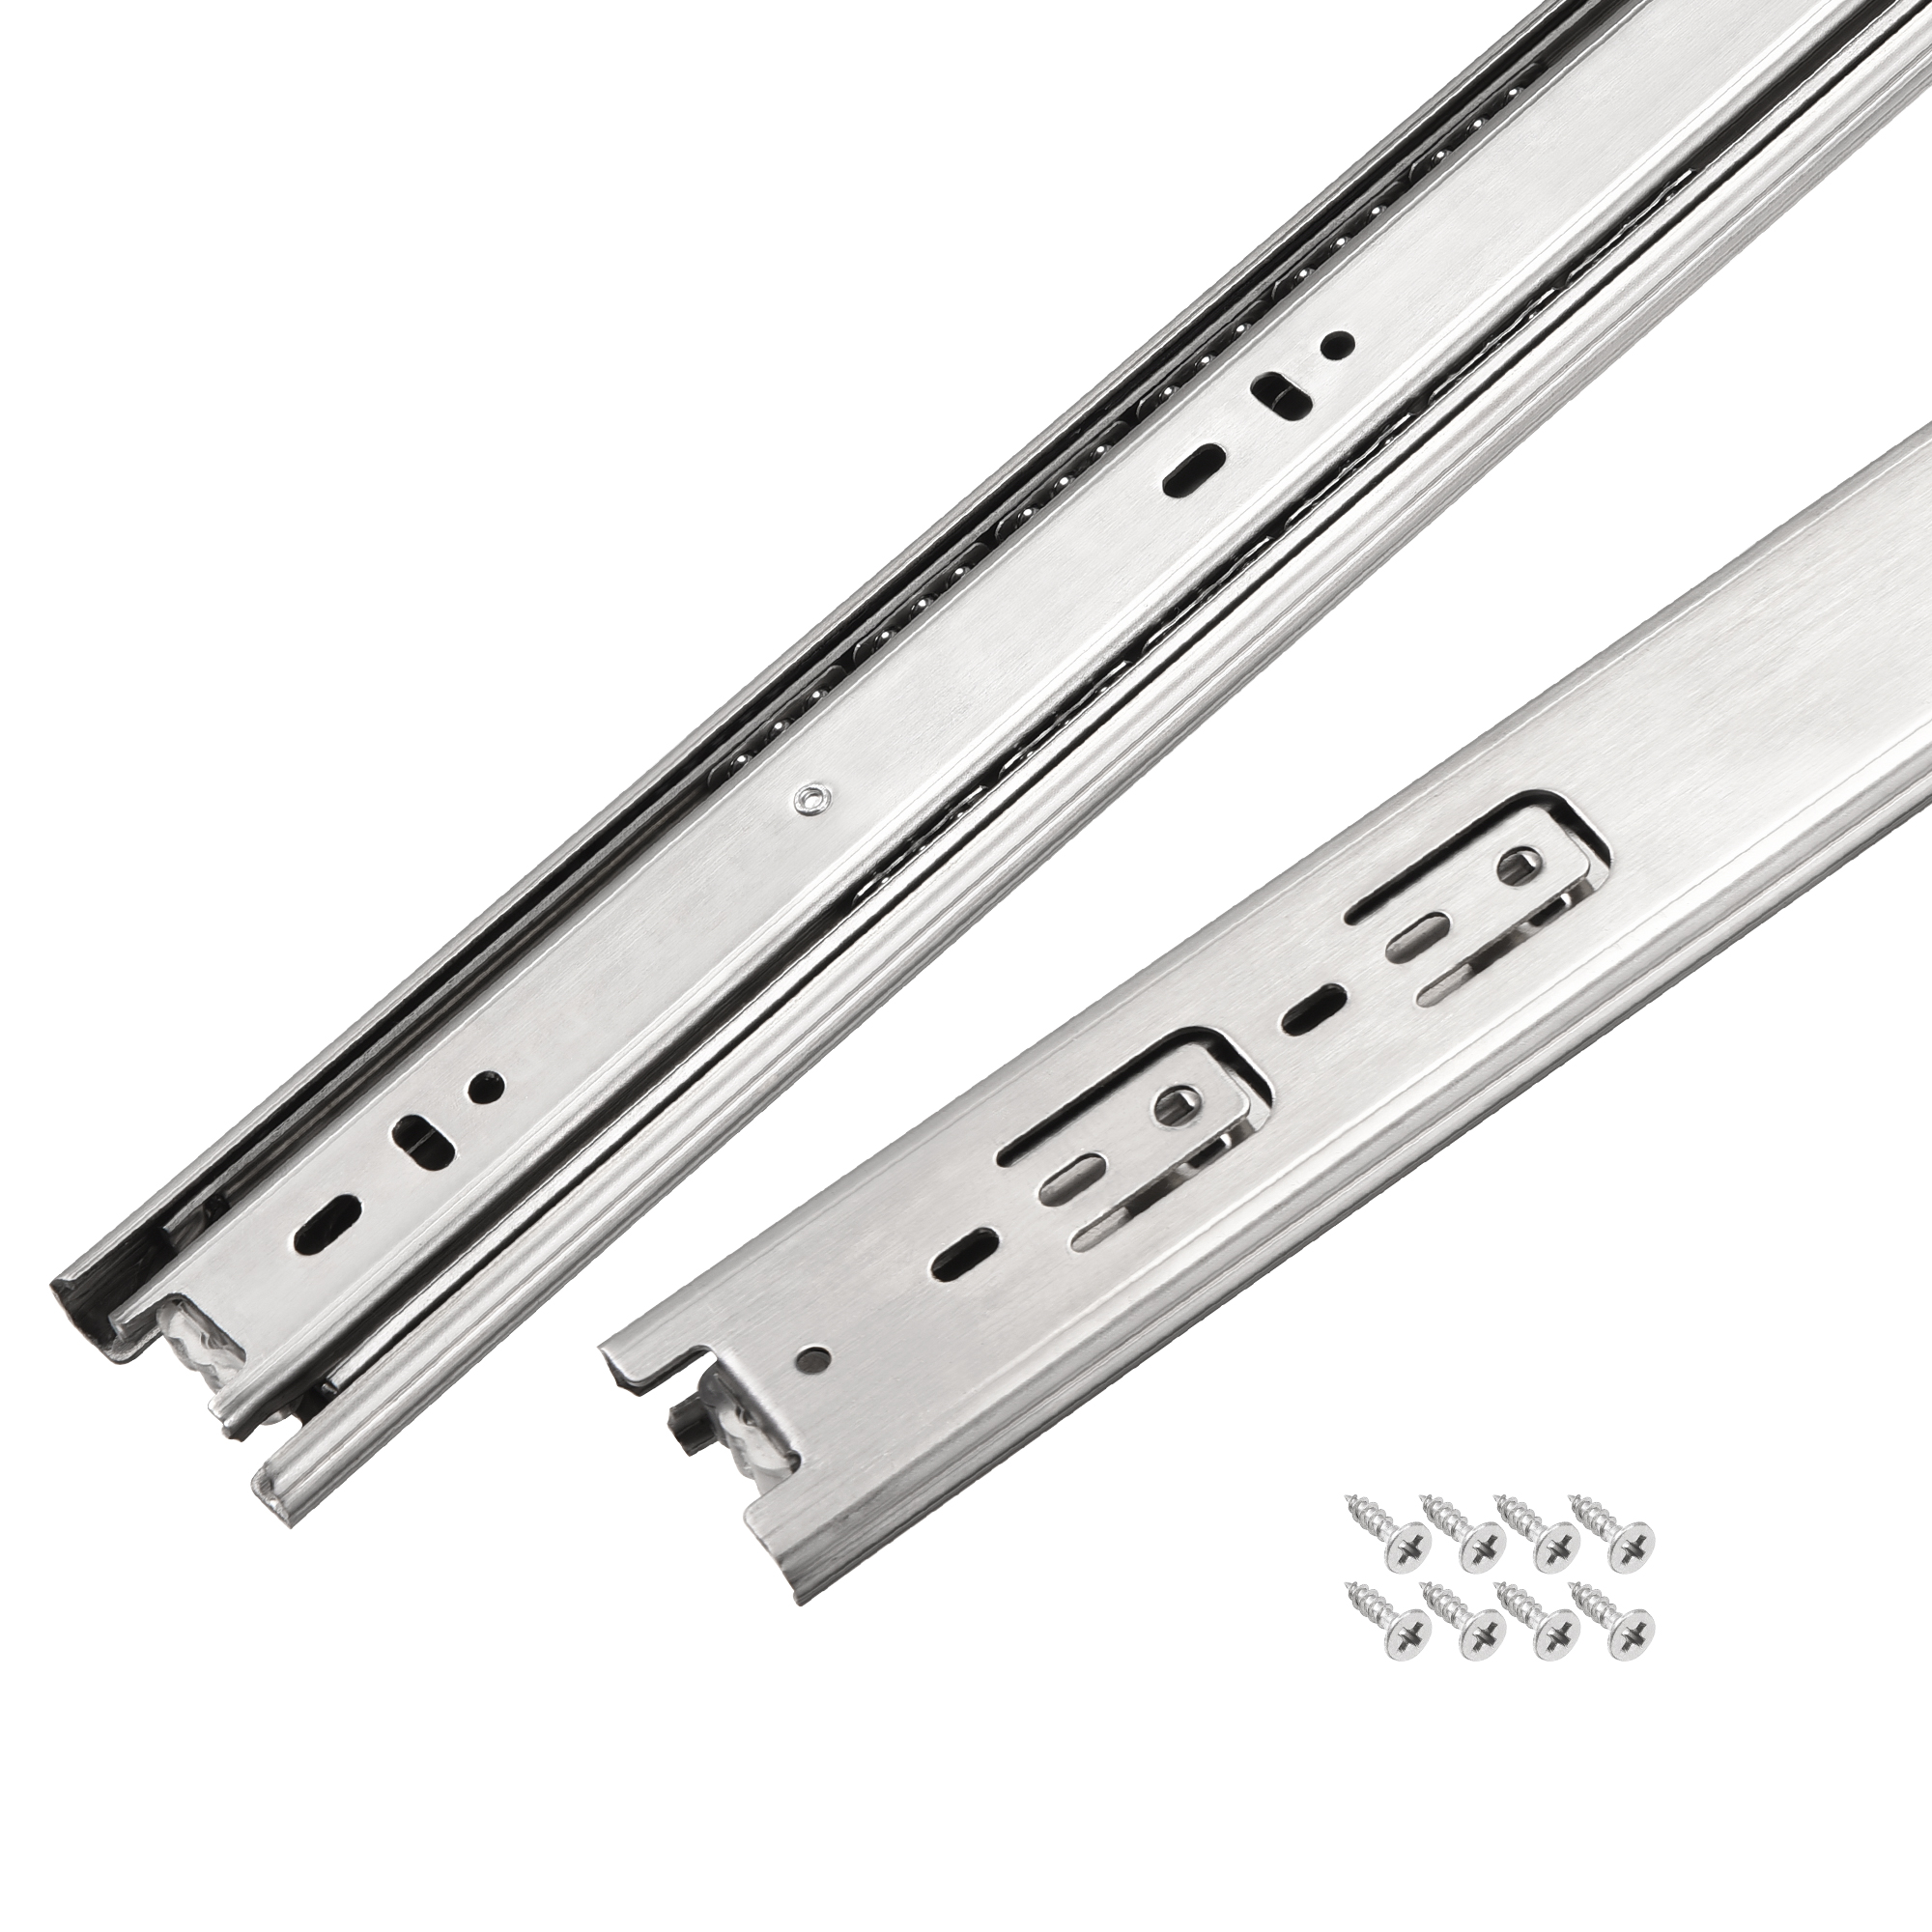 15.7Inch Drawer Slides Ball Bearing Track Rail 45mm Wide 3 Sections 1 Pair